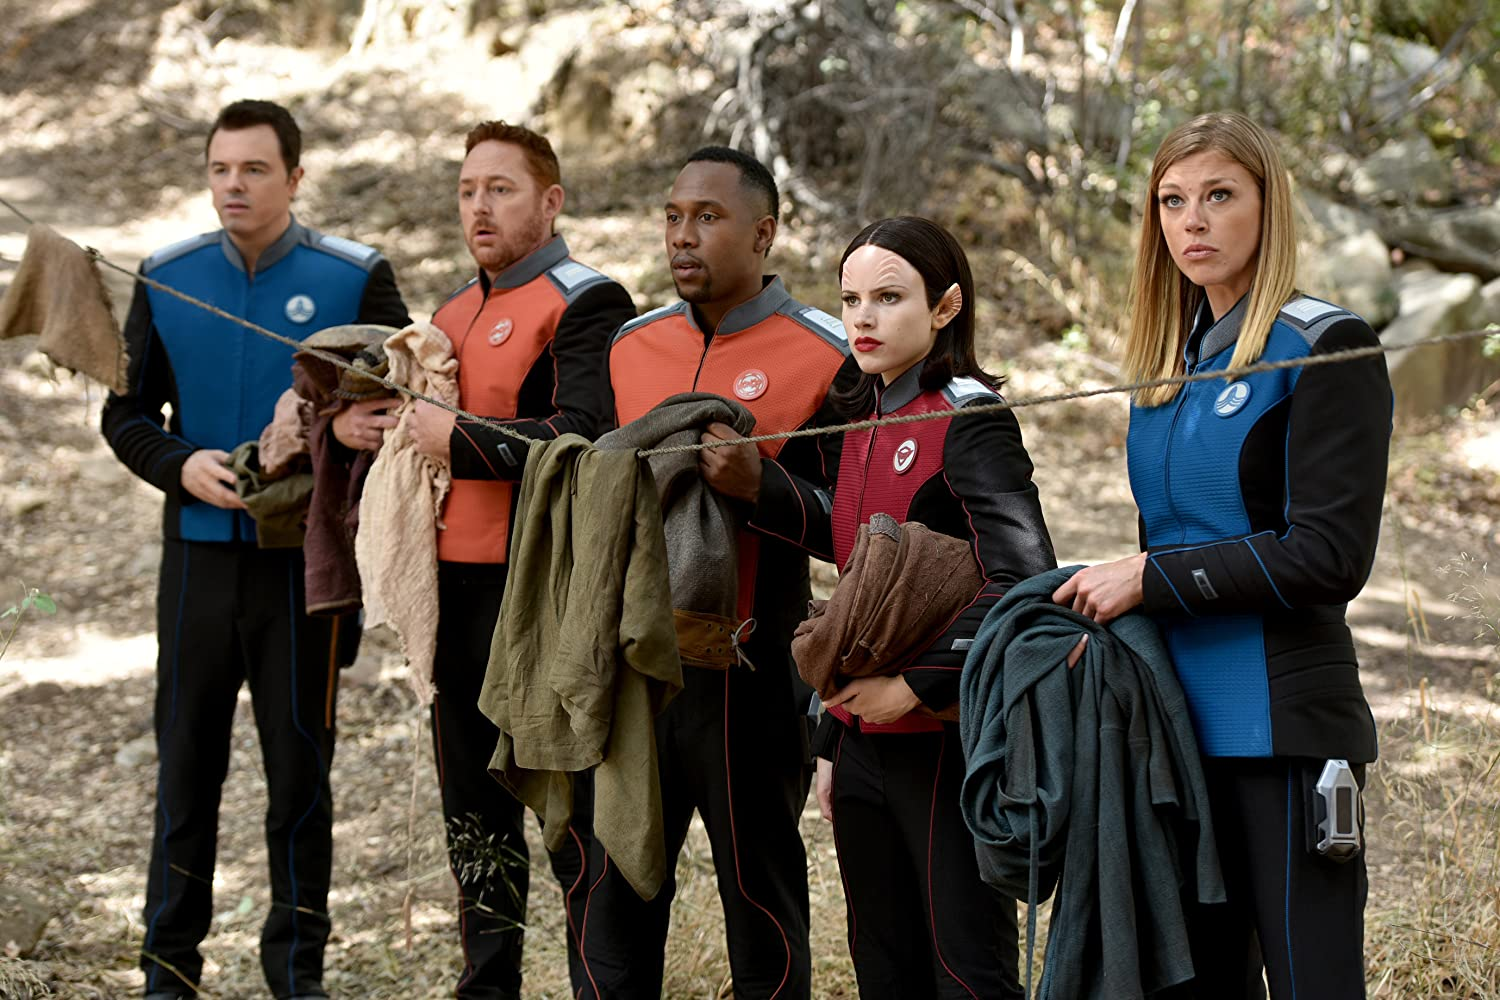 Scott Grimes, Seth MacFarlane, Adrianne Palicki, J. Lee, and Halston Sage in The Orville (2017)